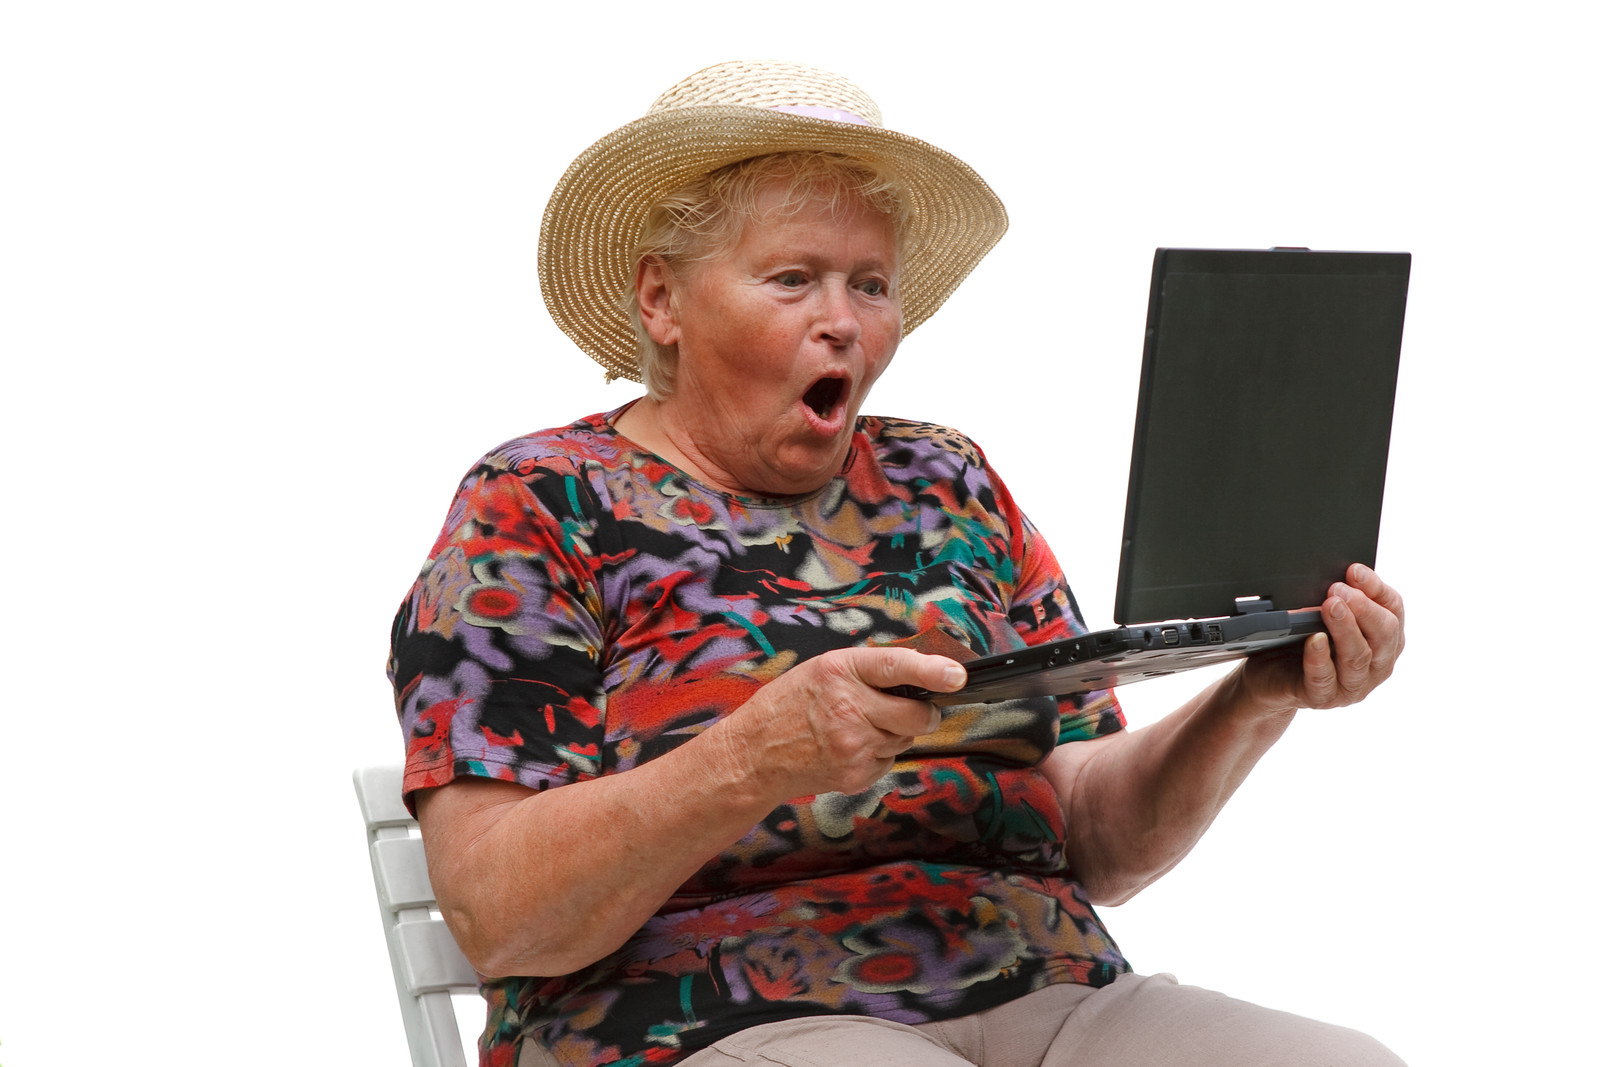 Senior woman looking at her laptop with a surprised look on her face because she just read an email stating she missed jury duty